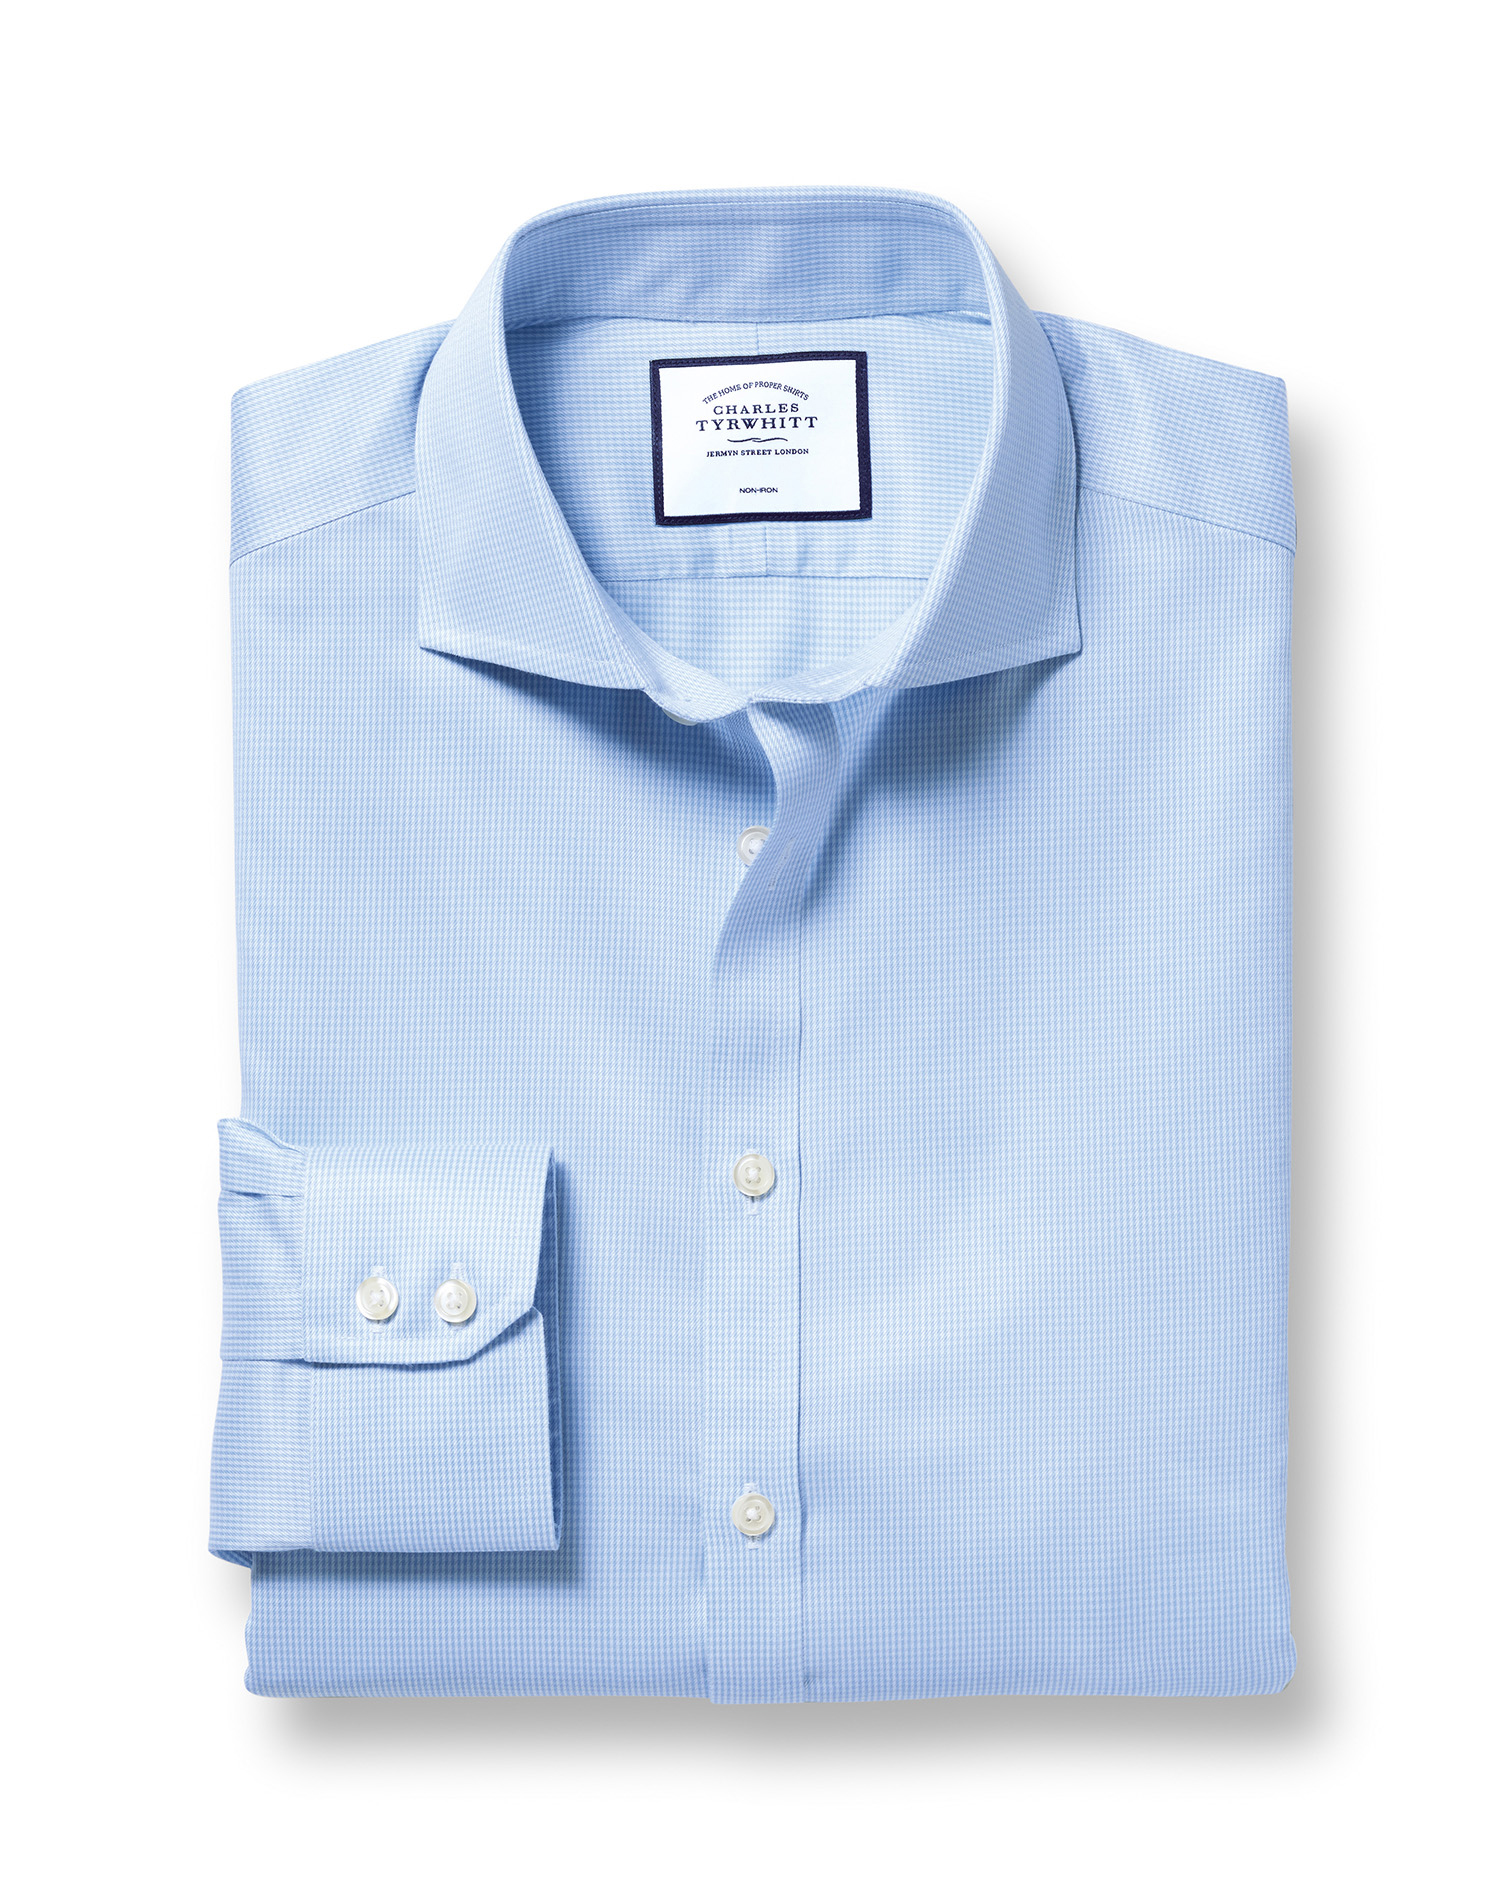 Slim Fit Cutaway Non-Iron Puppytooth Sky Blue Cotton Formal Shirt Double Cuff Size 15/35 by Charles Tyrwhitt from Charles Tyrwhitt